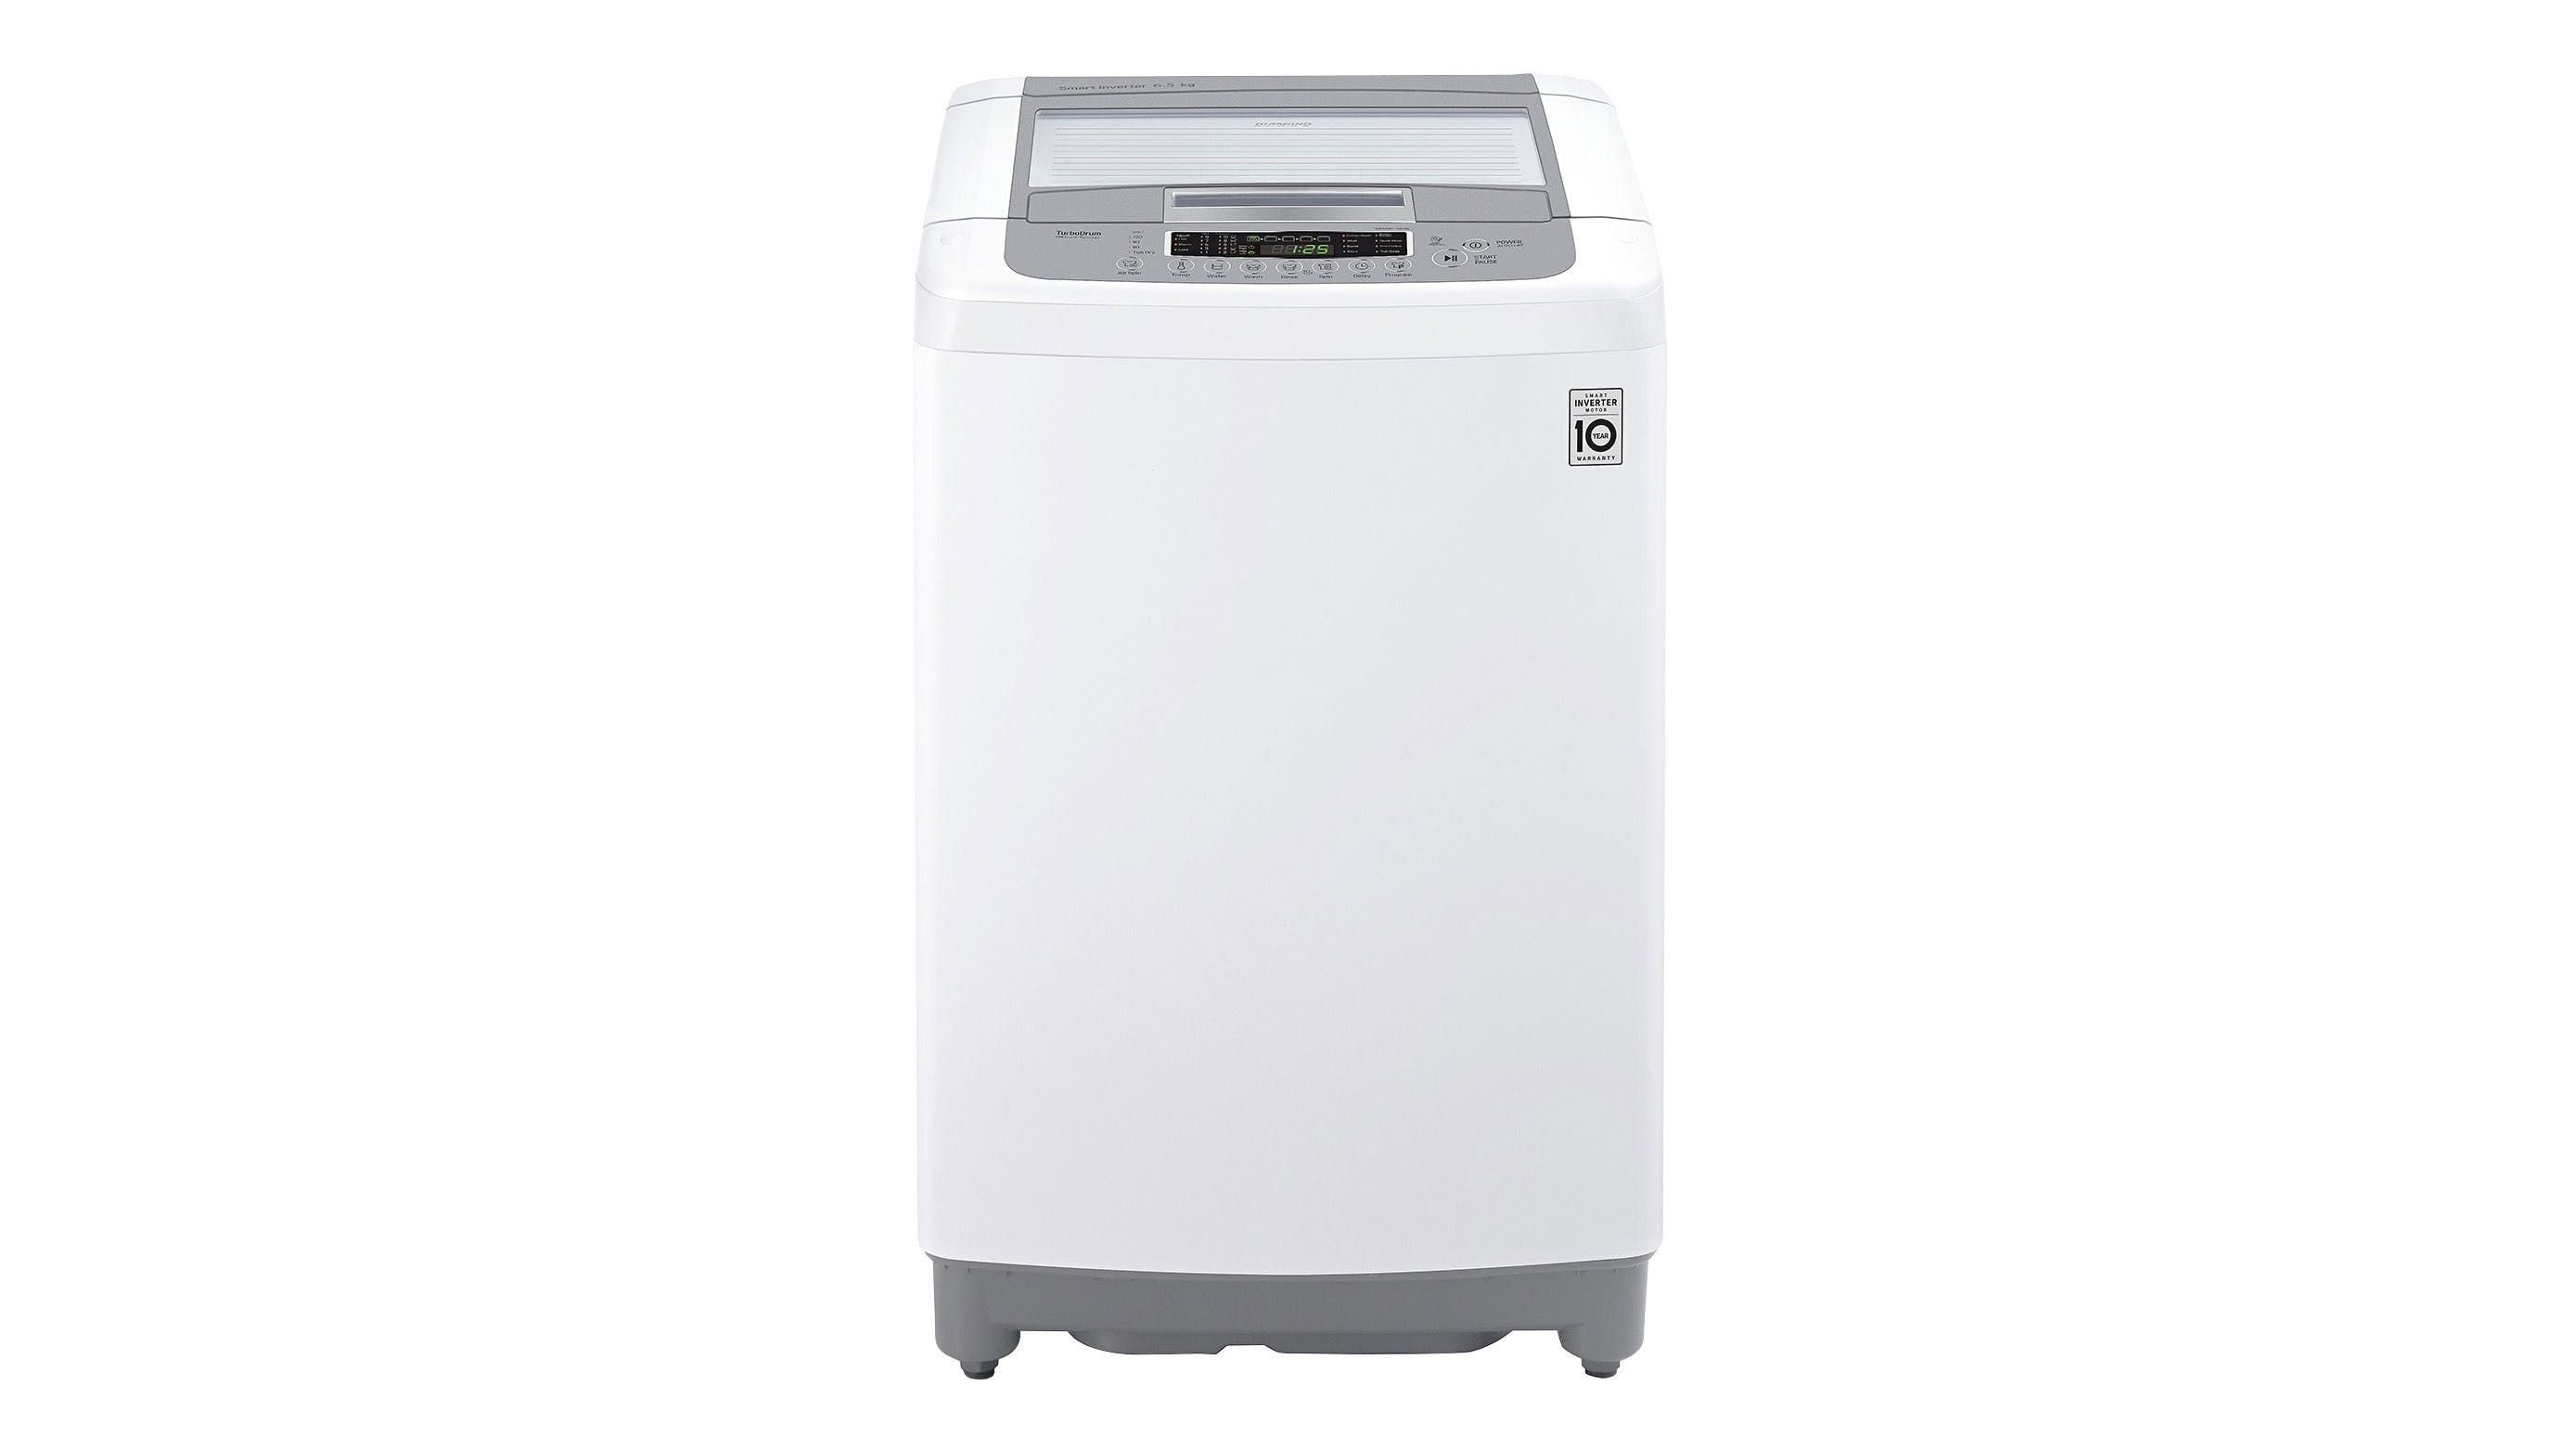 Lg Inverter Motor Top Load Washing Machine White